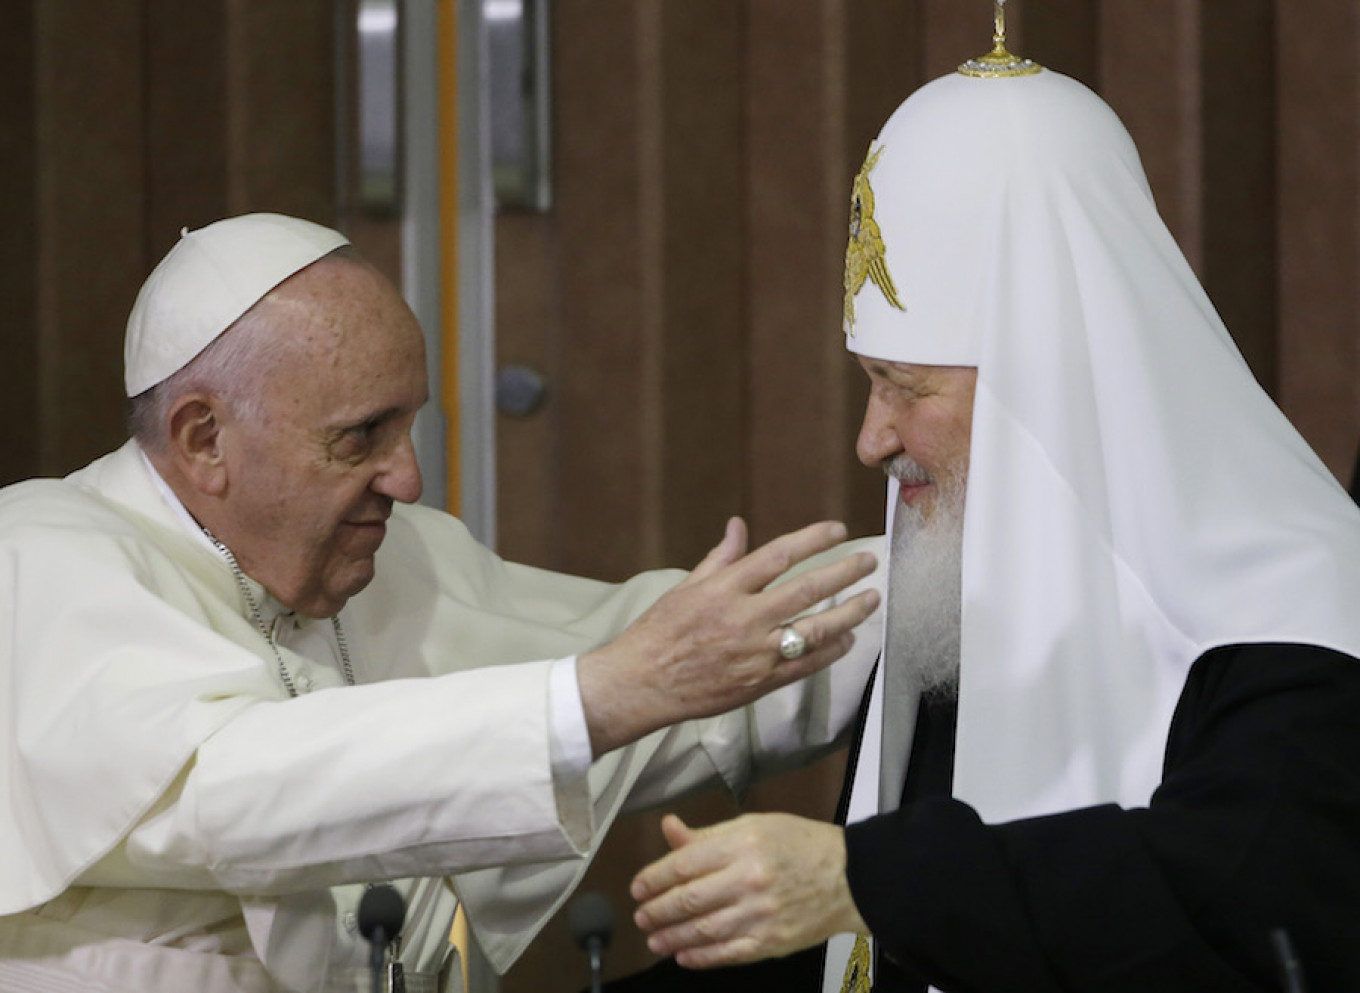 Pope Francis (L) embraces Russian Orthodox Patriarch Kirill after signing a joint declaration at the Jose Marti International airport in Havana, Cuba. Gregorio Borgia / AP